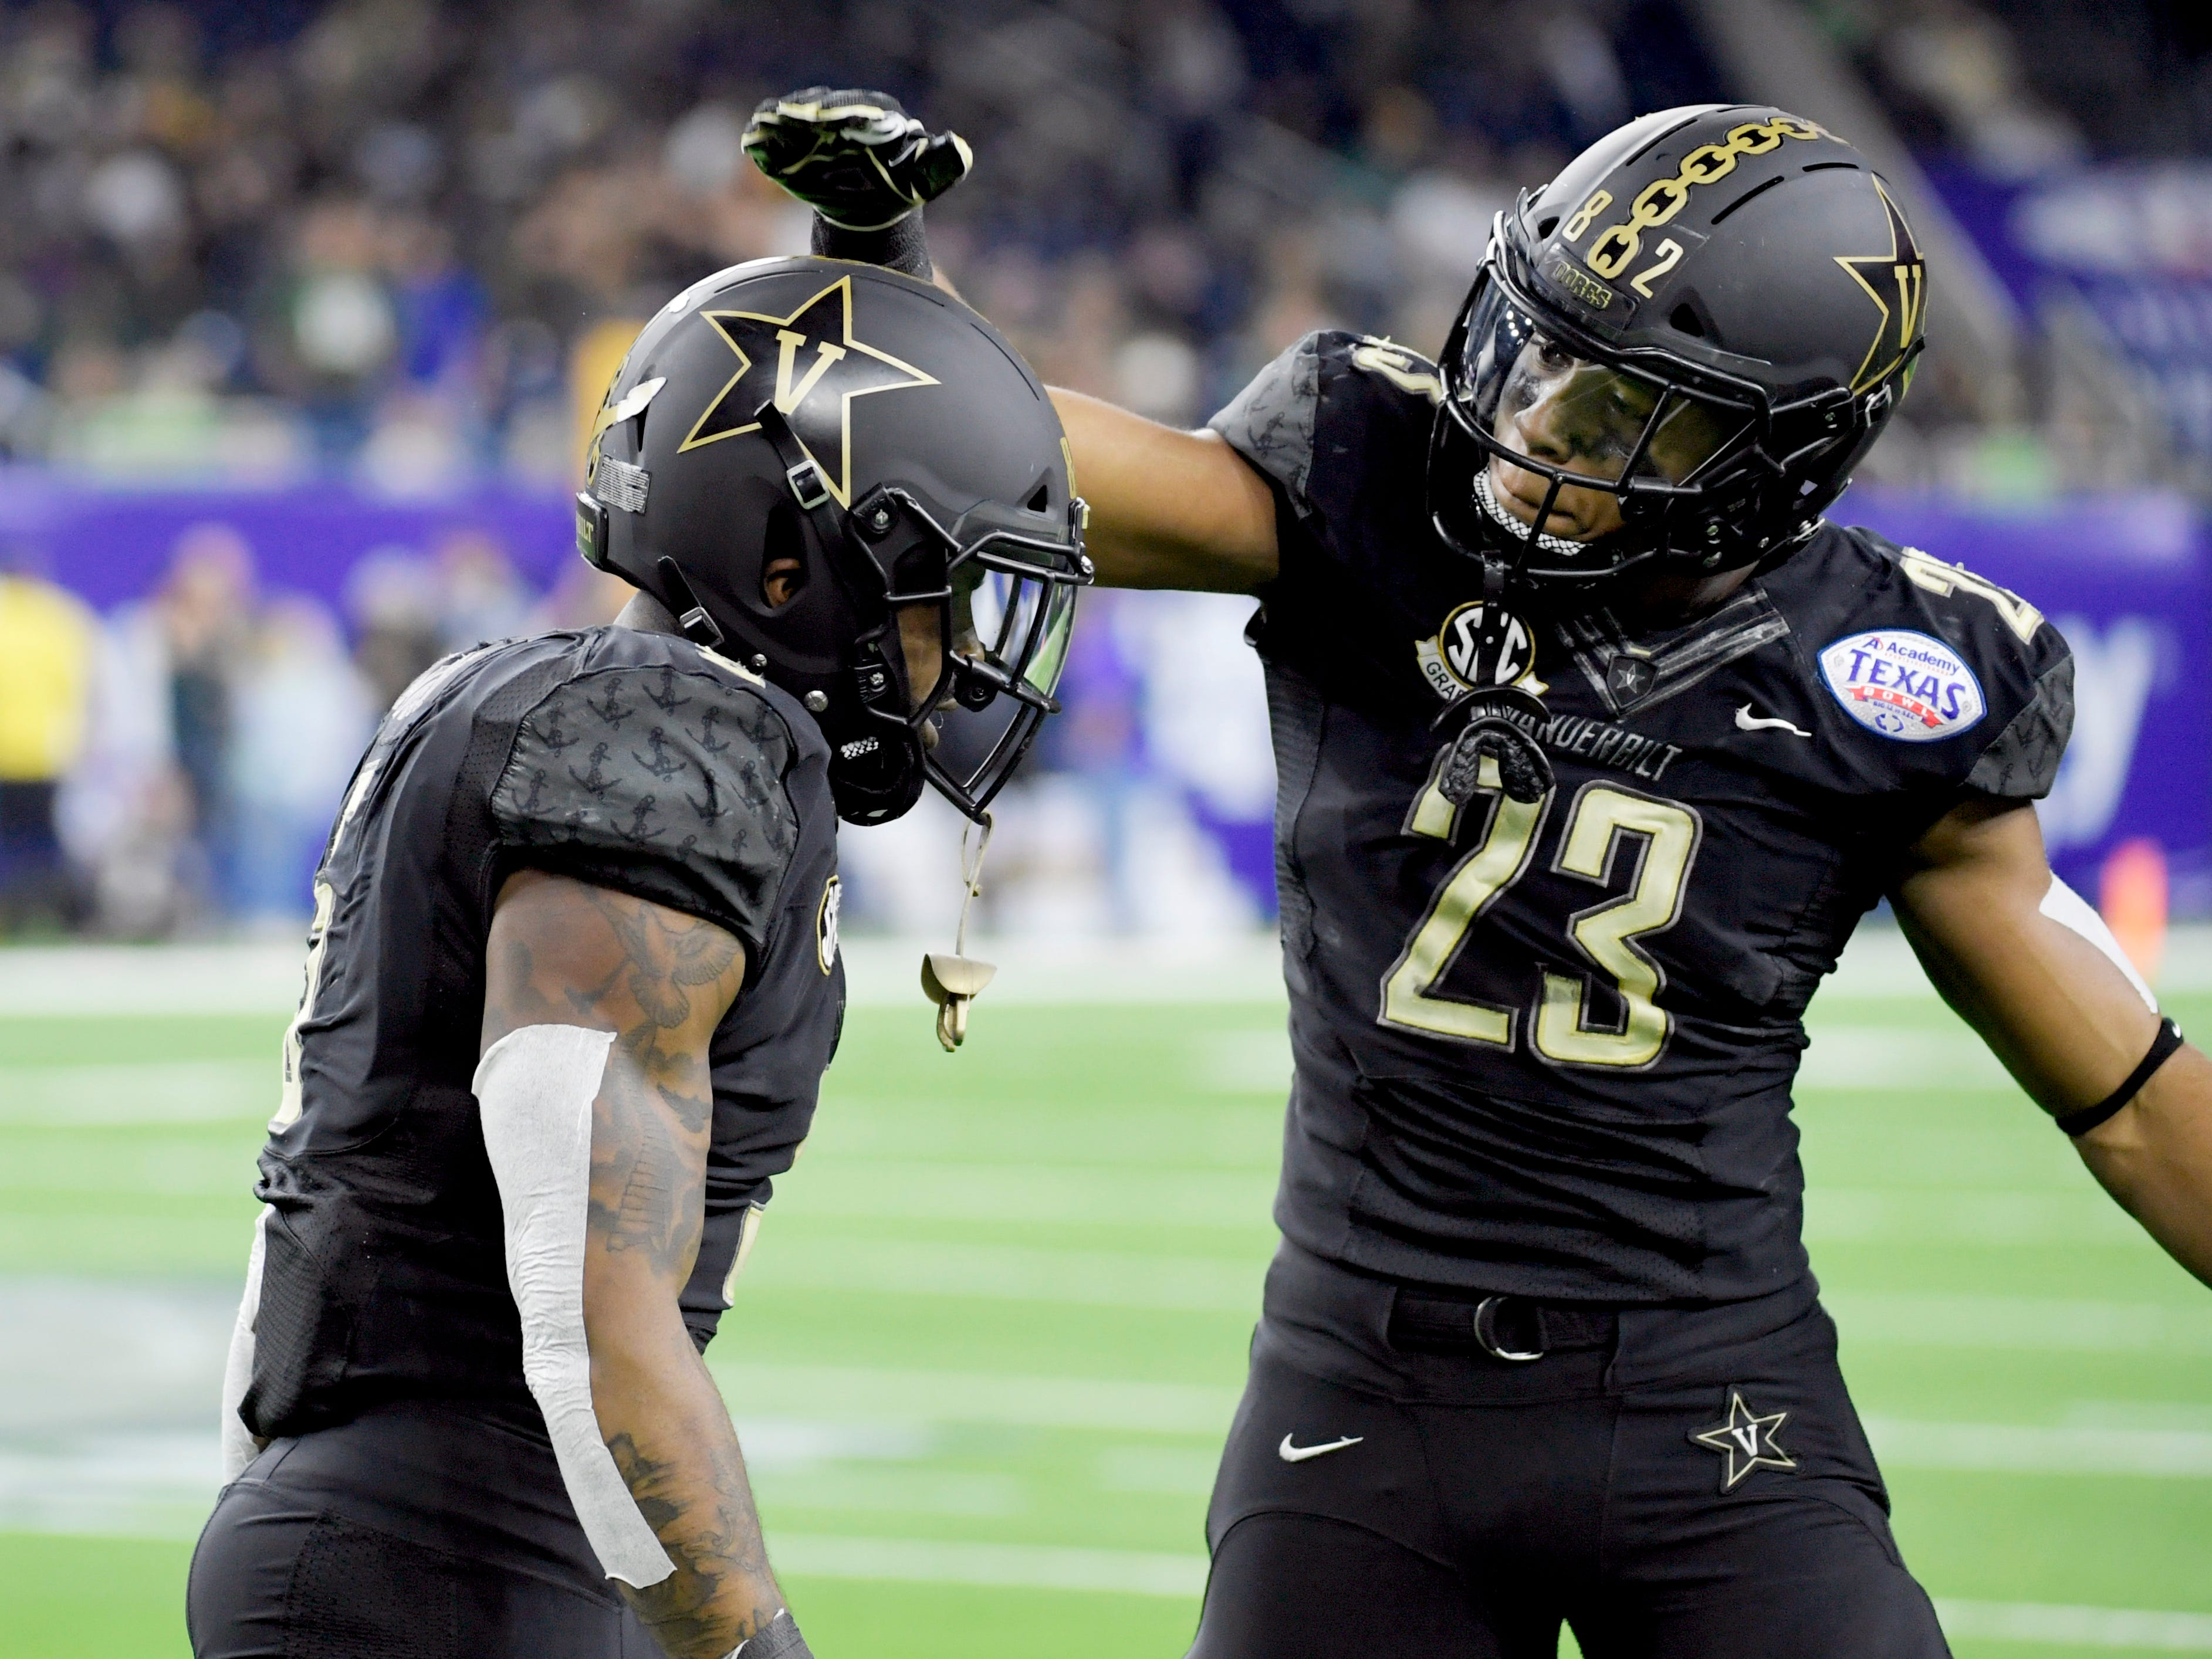 Vanderbilt Commodores running back Khari Blasingame (23) congratulates running back Ke'Shawn Vaughn (5) after his 68-yard touchdown in the first quarter of the Academy Sports + Outdoors Texas Bowl at NRG Stadium in Houston on Thursday, Dec. 27, 2018.